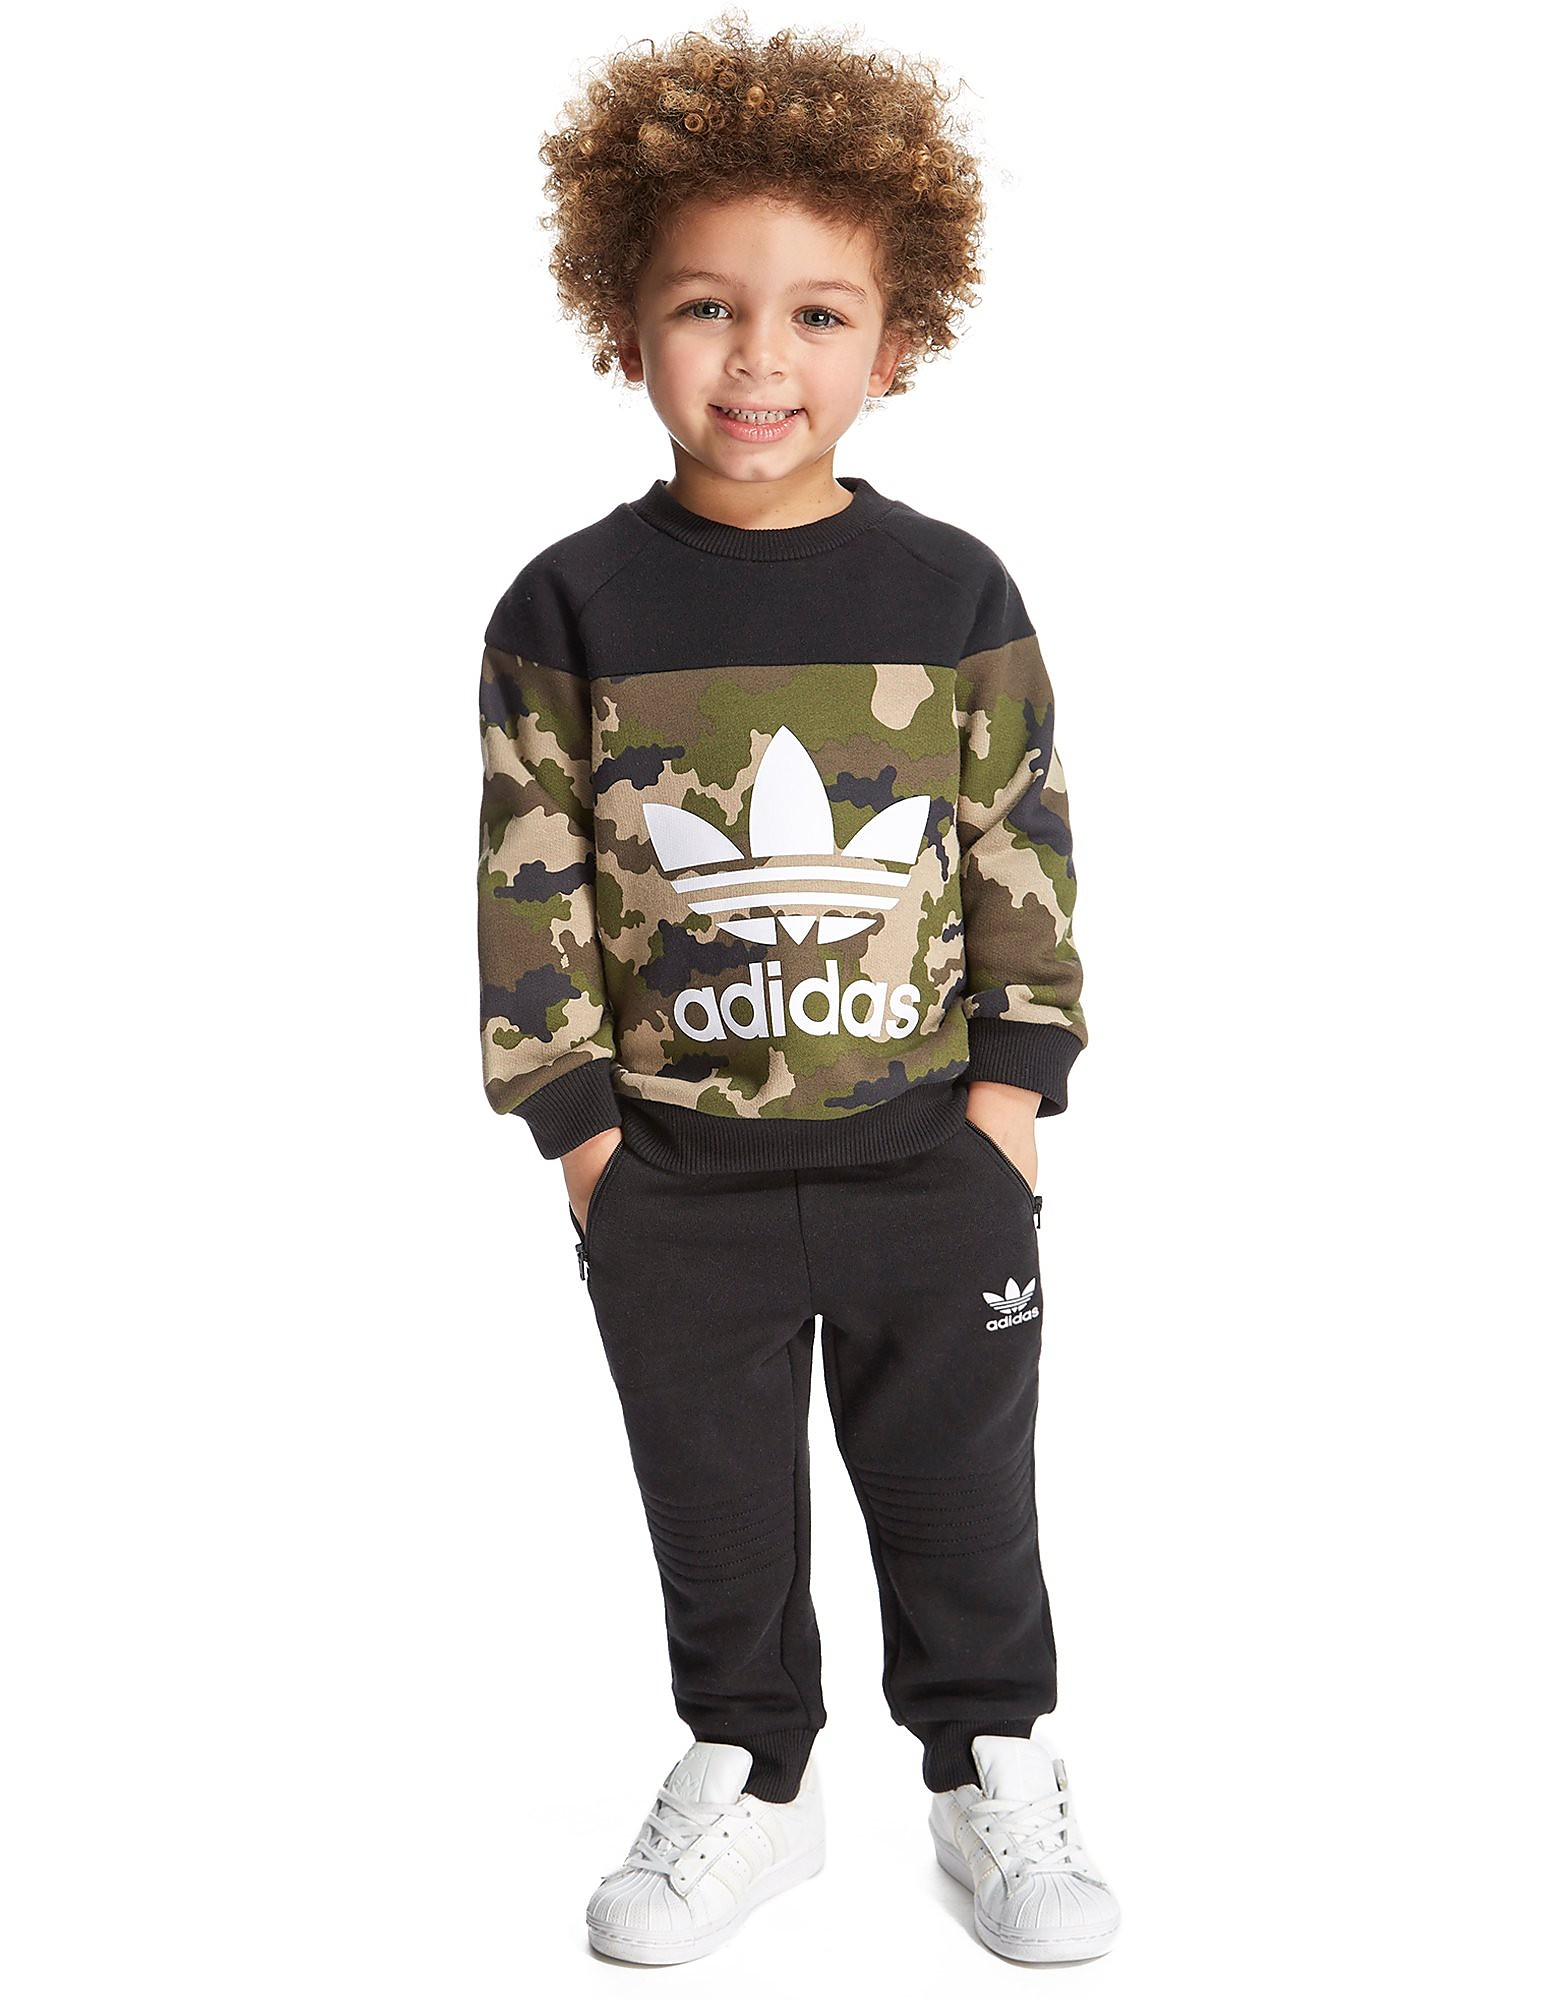 adidas Originals Camo Crew Suit Infant